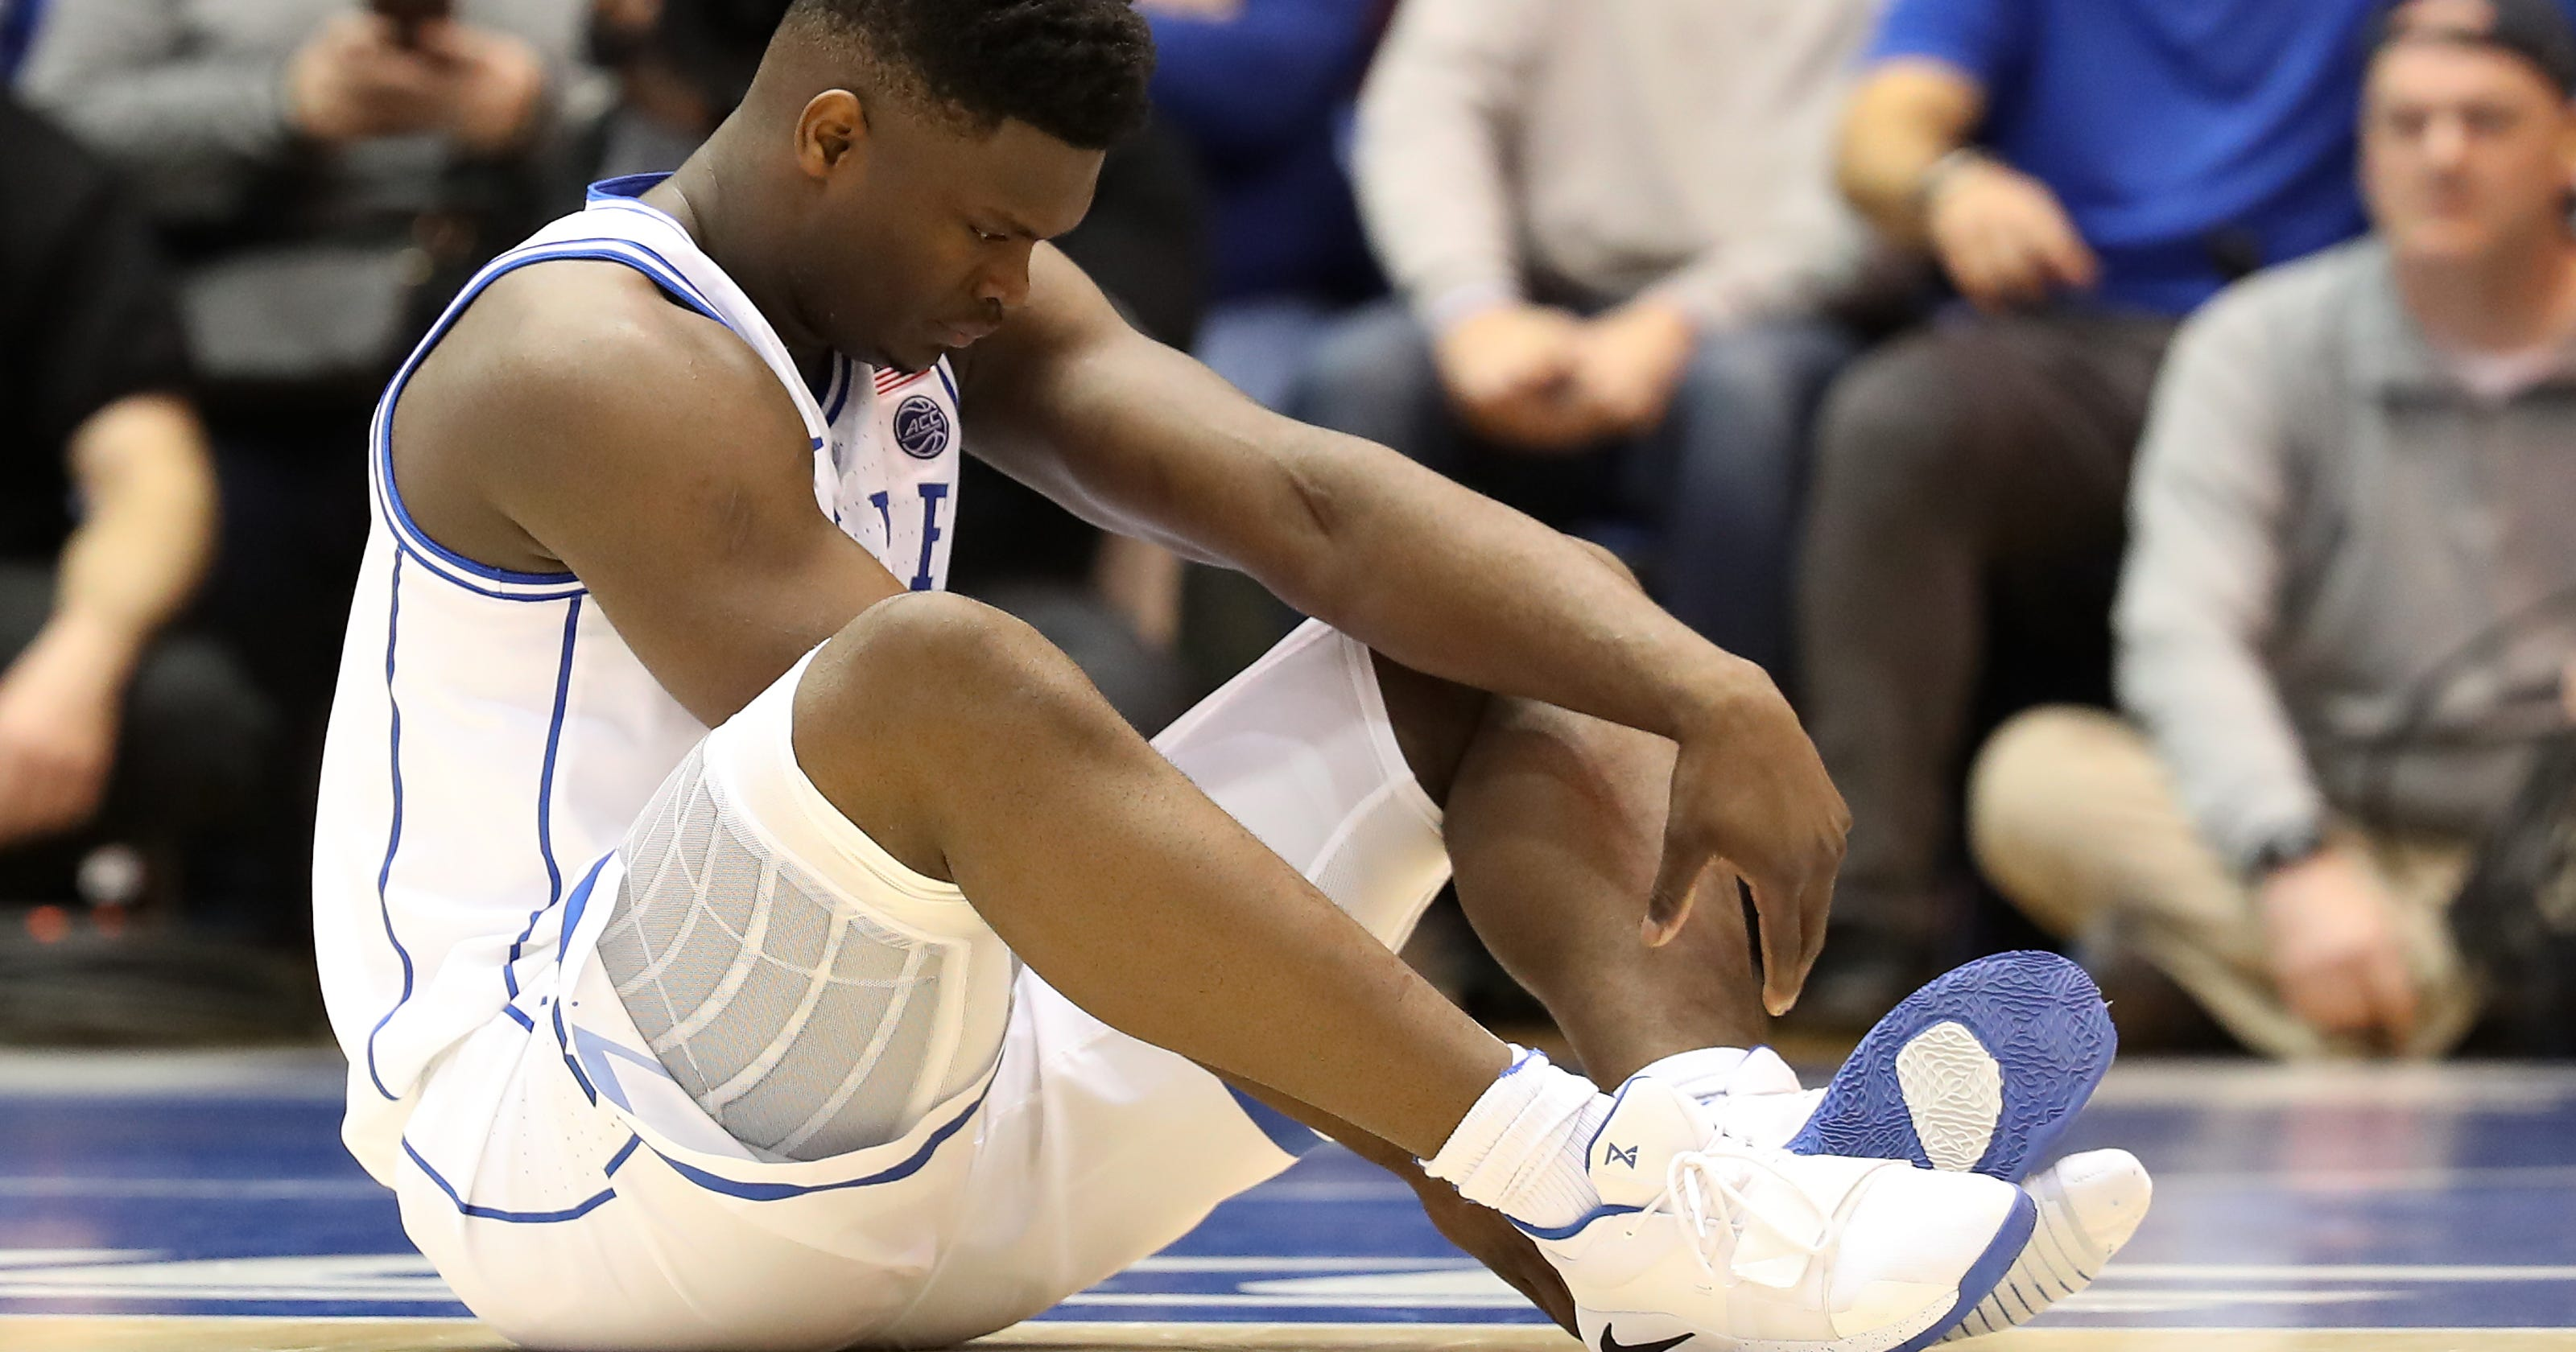 823e72c6f17 Tennessee basketball has no worries about Nike shoes after Zion Williamson  blowout